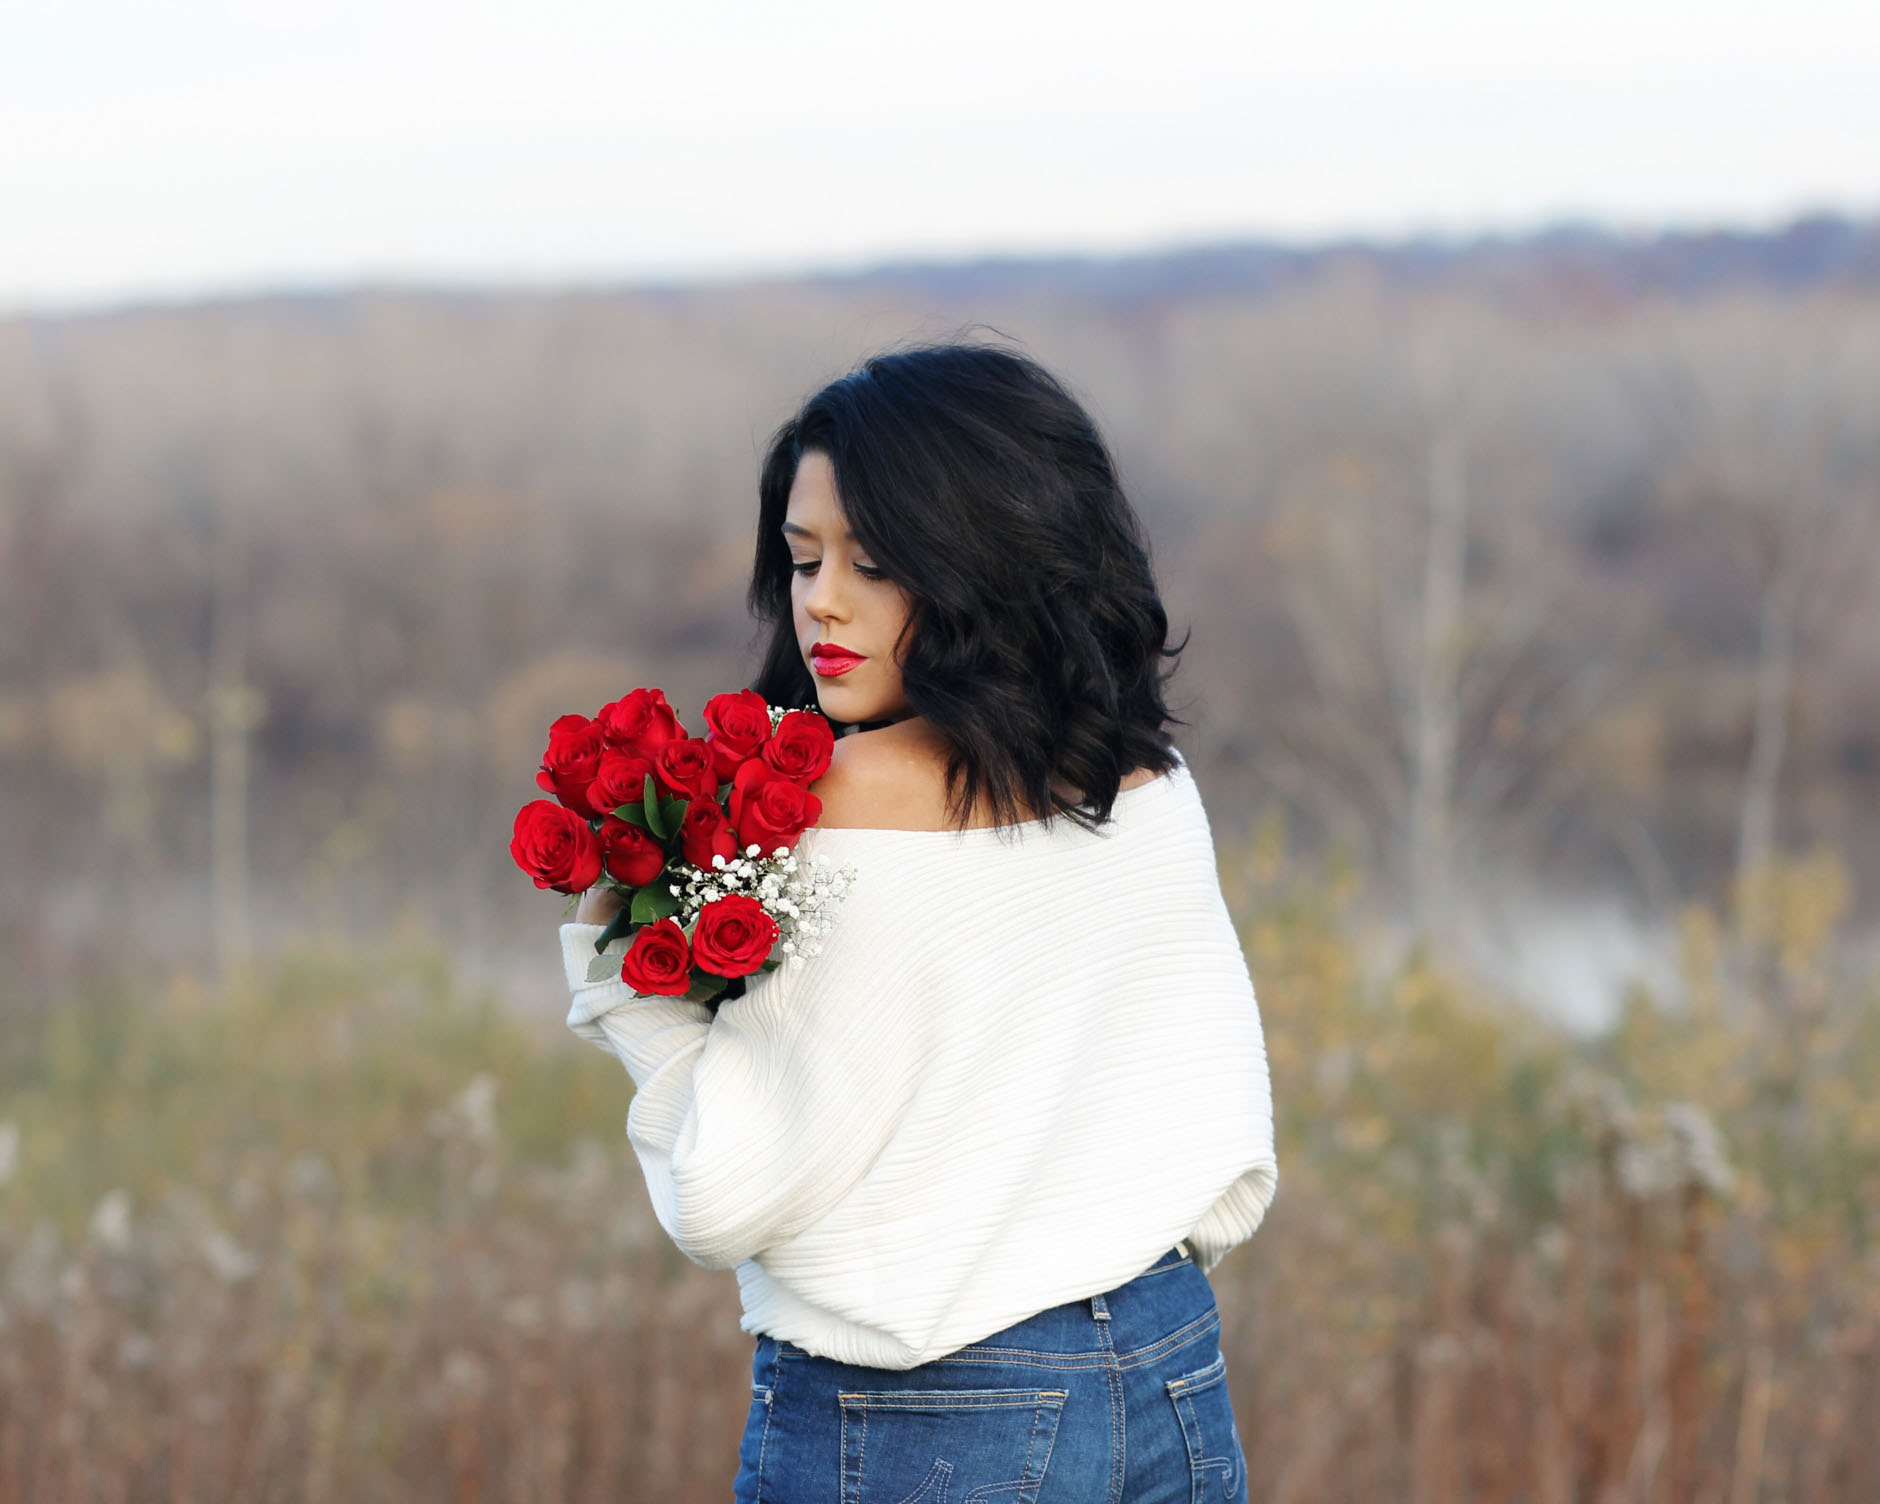 lifestyle blogger naty michele holding red roses